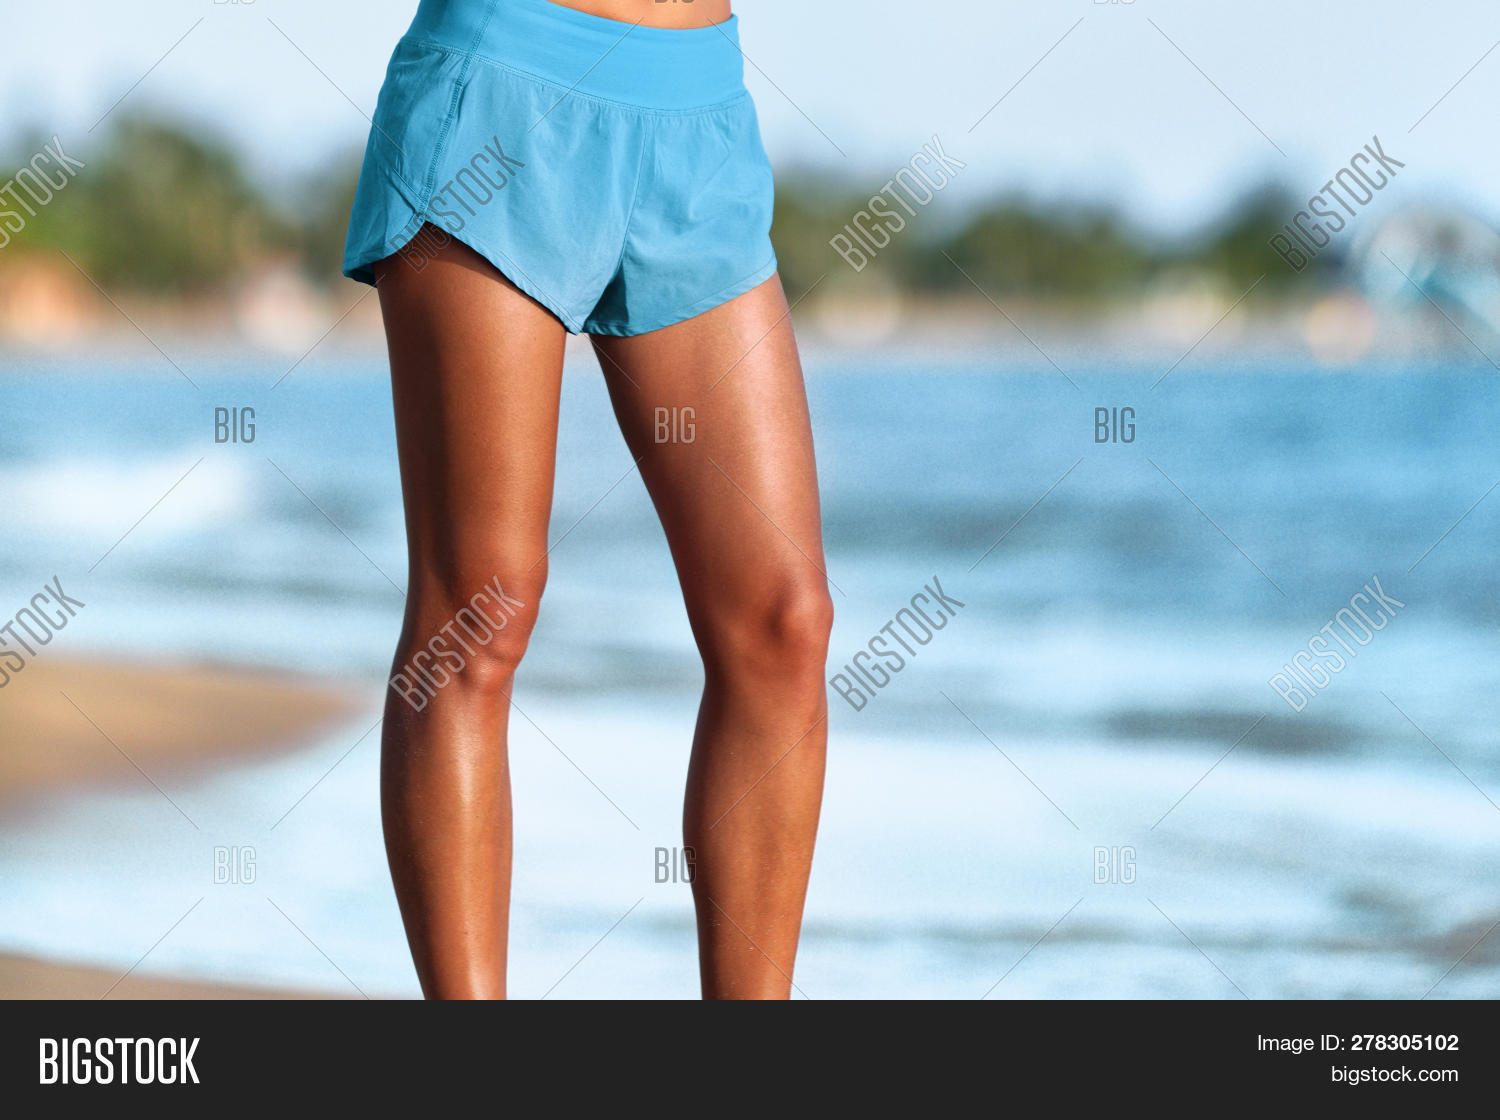 Woman Legs Fit Girl Image Photo Free Trial Bigstock Beautiful female legs perfectly depilated. woman legs fit girl image photo free